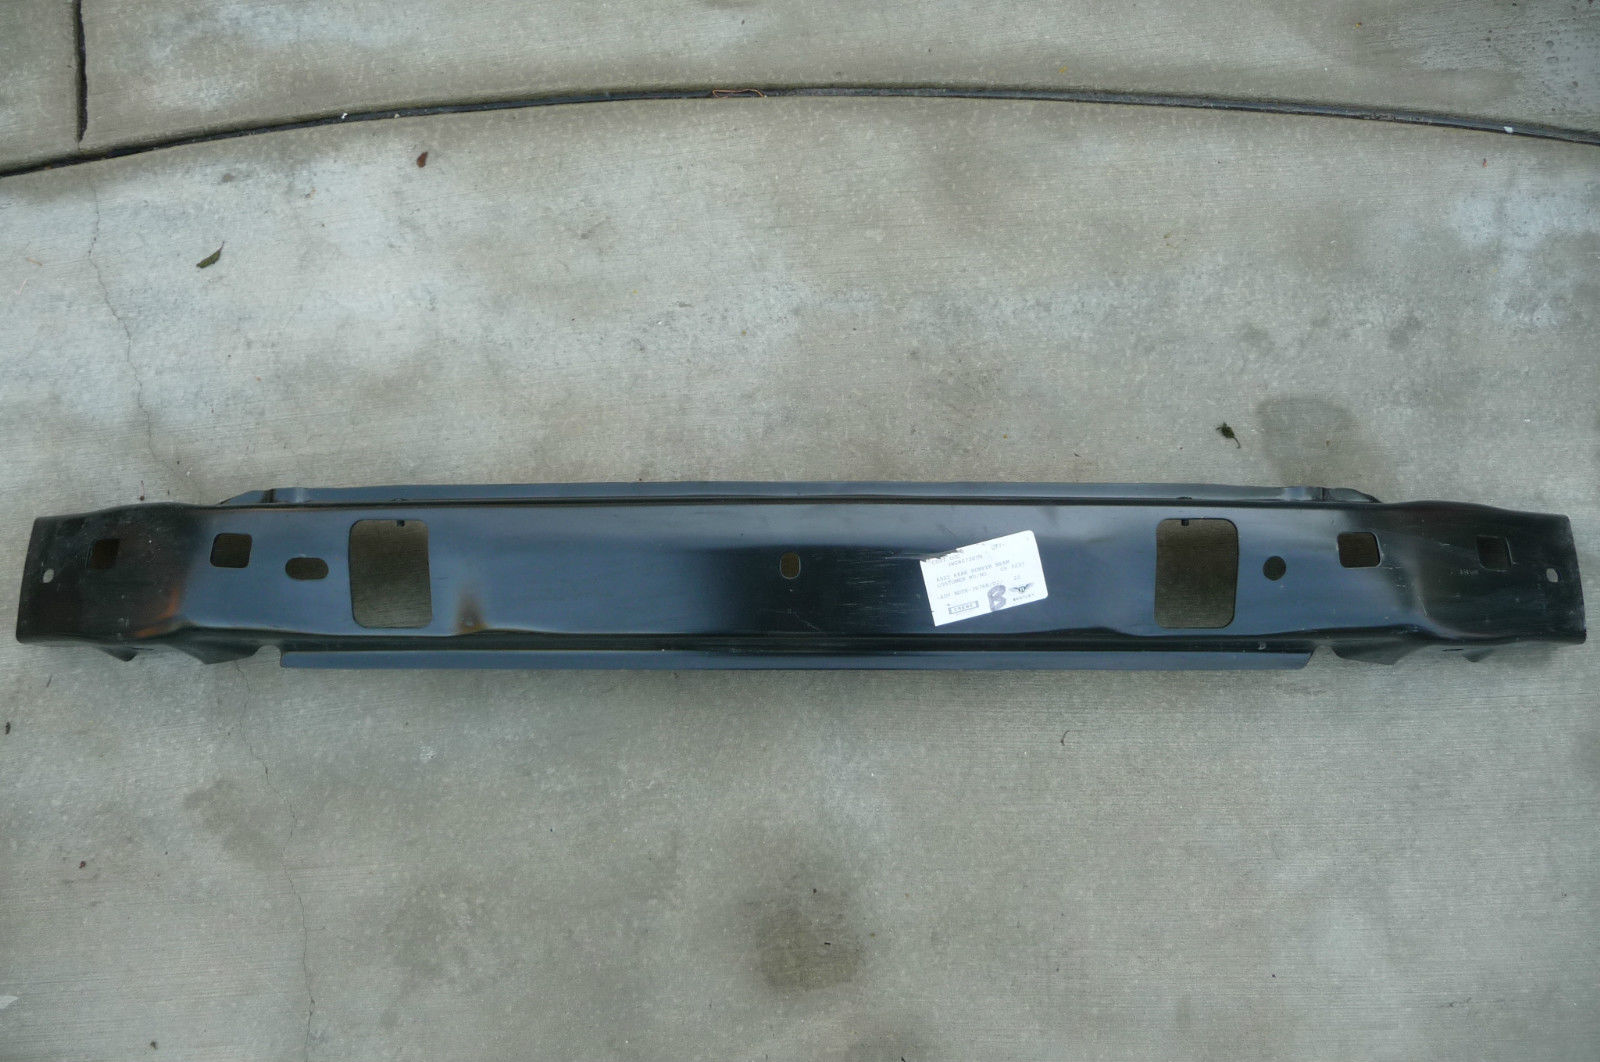 2004 2005 2006 2007 2008 2009 2010  Bentley Continental GT GTC Flying Spur Rear Cross Member Bar Beam Reinforcement Absorber 3W0807305H - Used Auto Parts Store | LA Global Parts